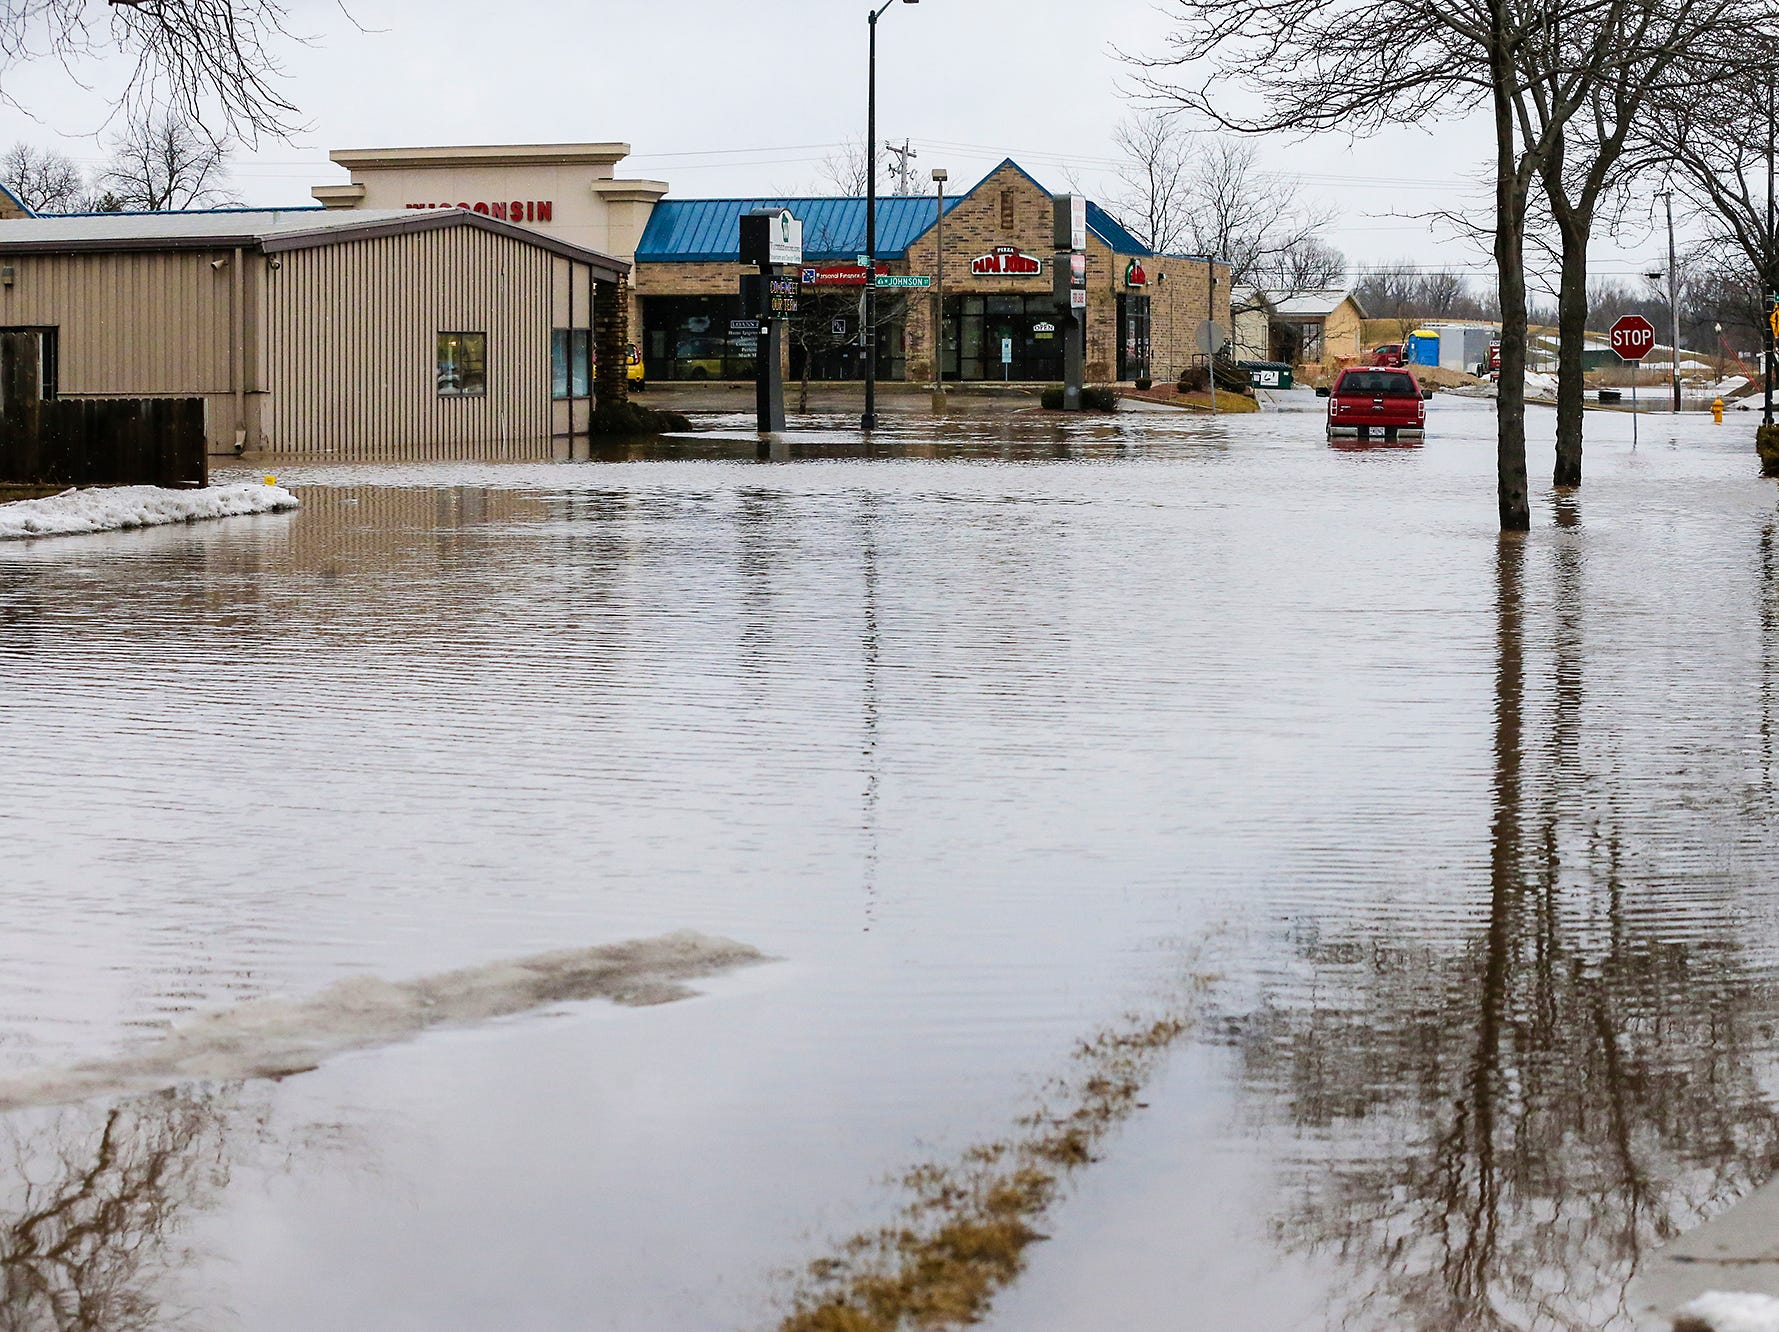 A red pick-up truck sits stalled in floodwaters Friday, March 15, 2019 at the intersection of Johnson and Butler Streets in Fond du Lac, Wis. Ice jams on the east branch of the Fond du Lac River and heavy rain caused widespread flooding problems in the city on Thursday the 14th. Doug Raflik/USA TODAY NETWORK-Wisconsin